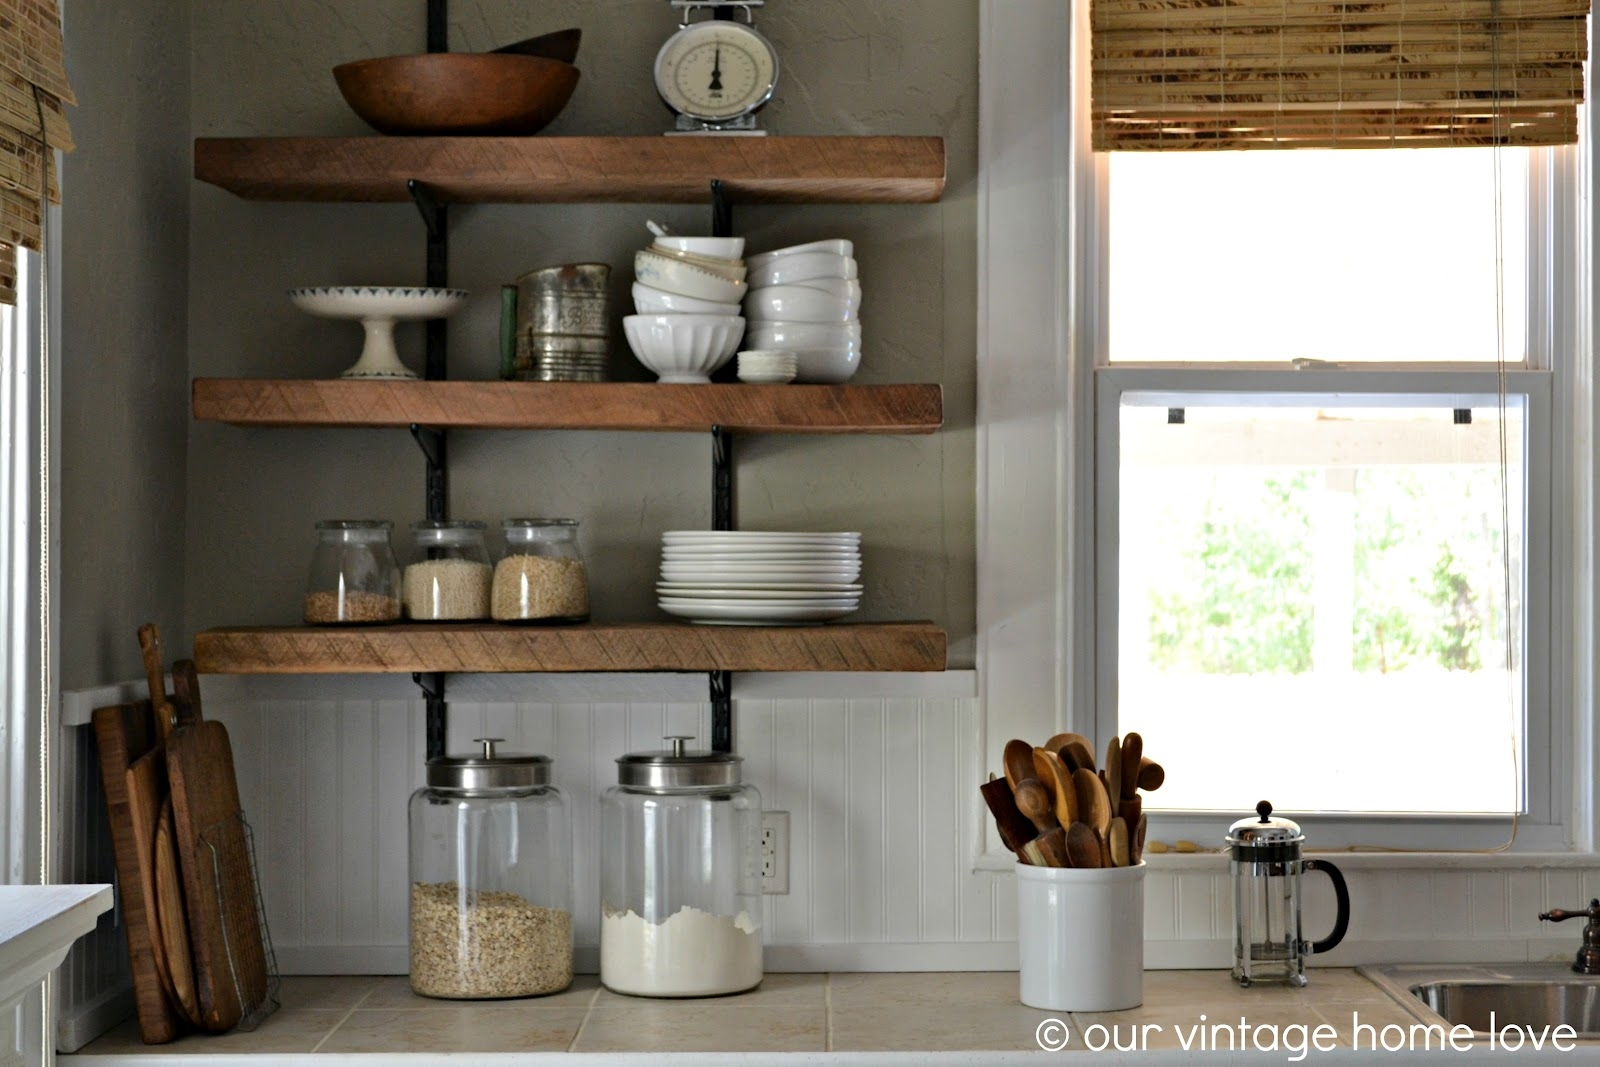 Our Vintage Home Love Reclaimed Wood Kitchen Shelving Reveal Pertaining To Kitchen Shelves (View 6 of 12)